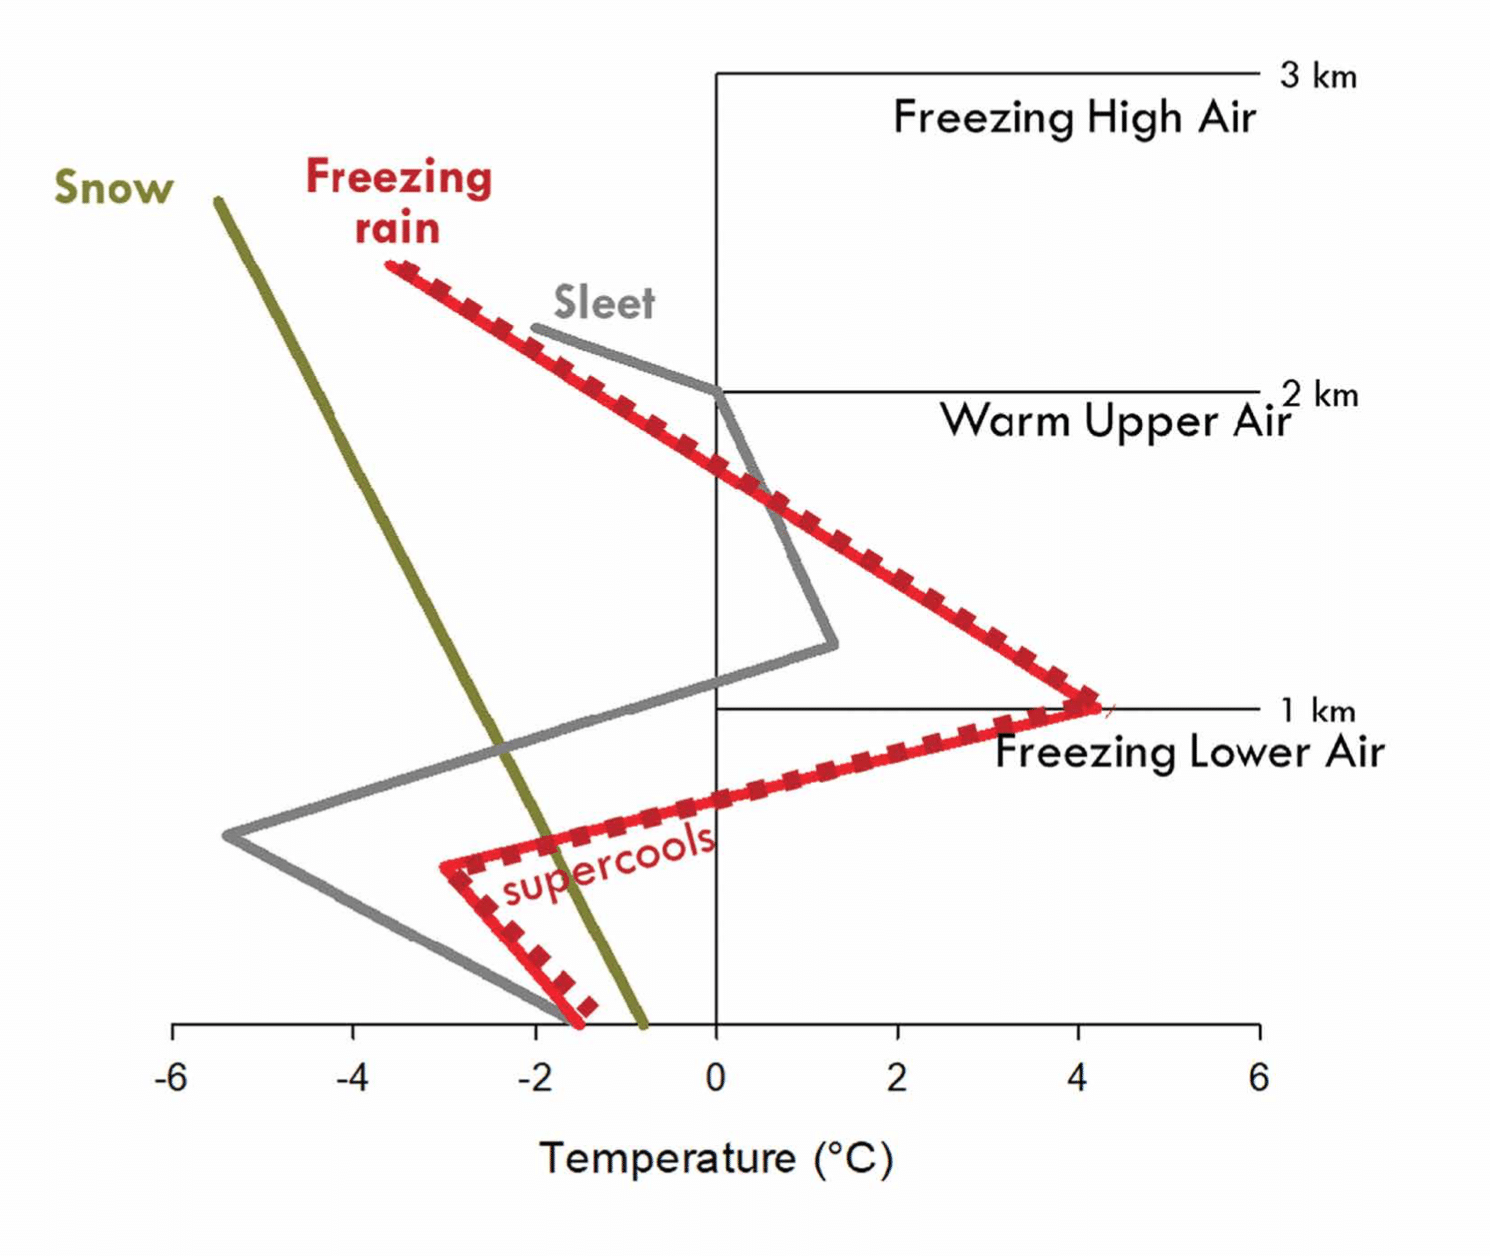 Figure showing atmospheric conditions needed to produce ice storms. From Rustad and Campbell, 2012.